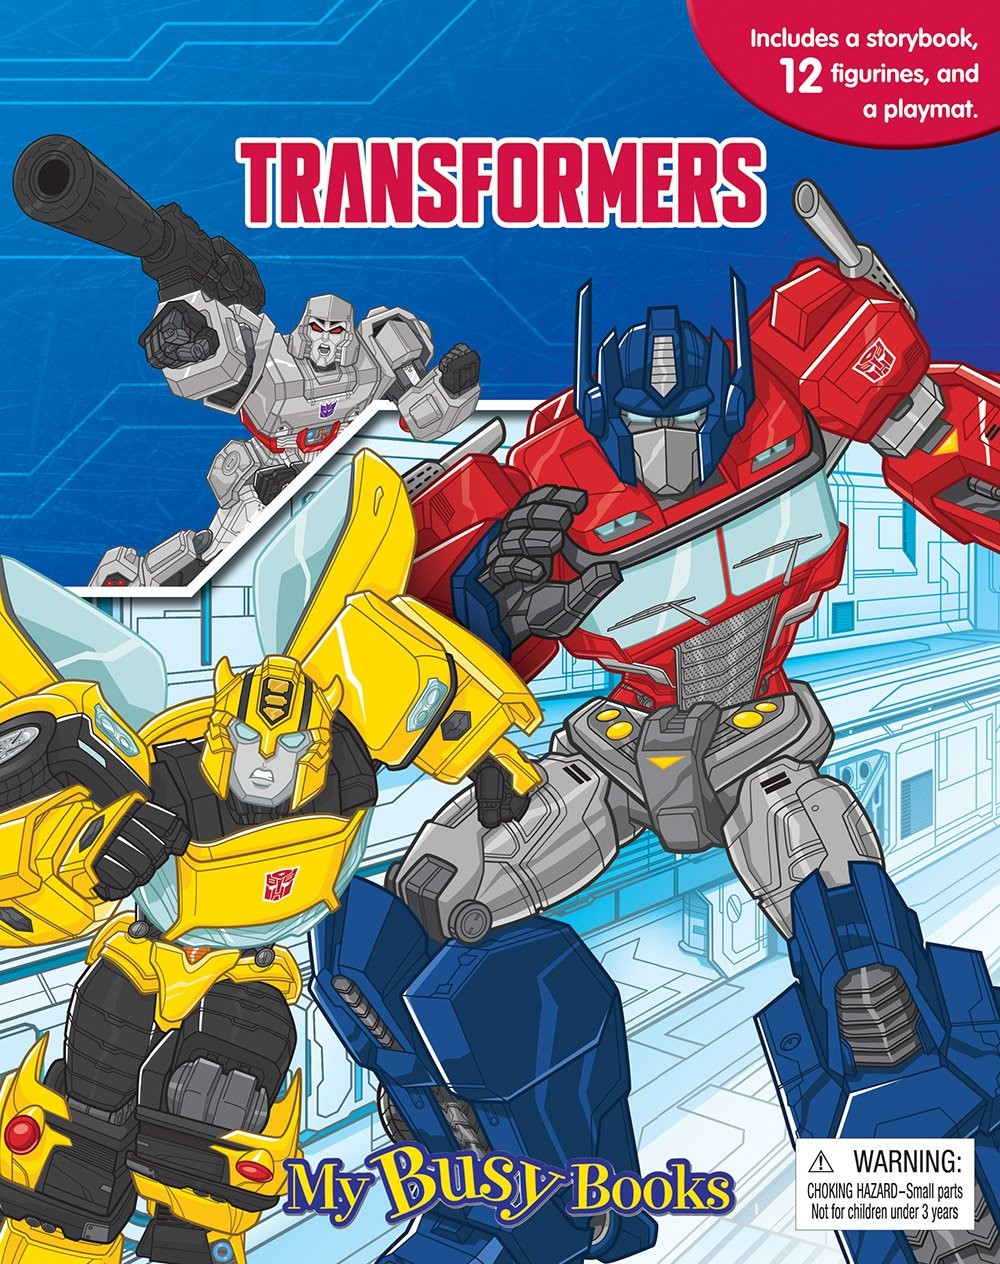 Transformers News: First Images of Transformers Busy Book with Figures and Playmat